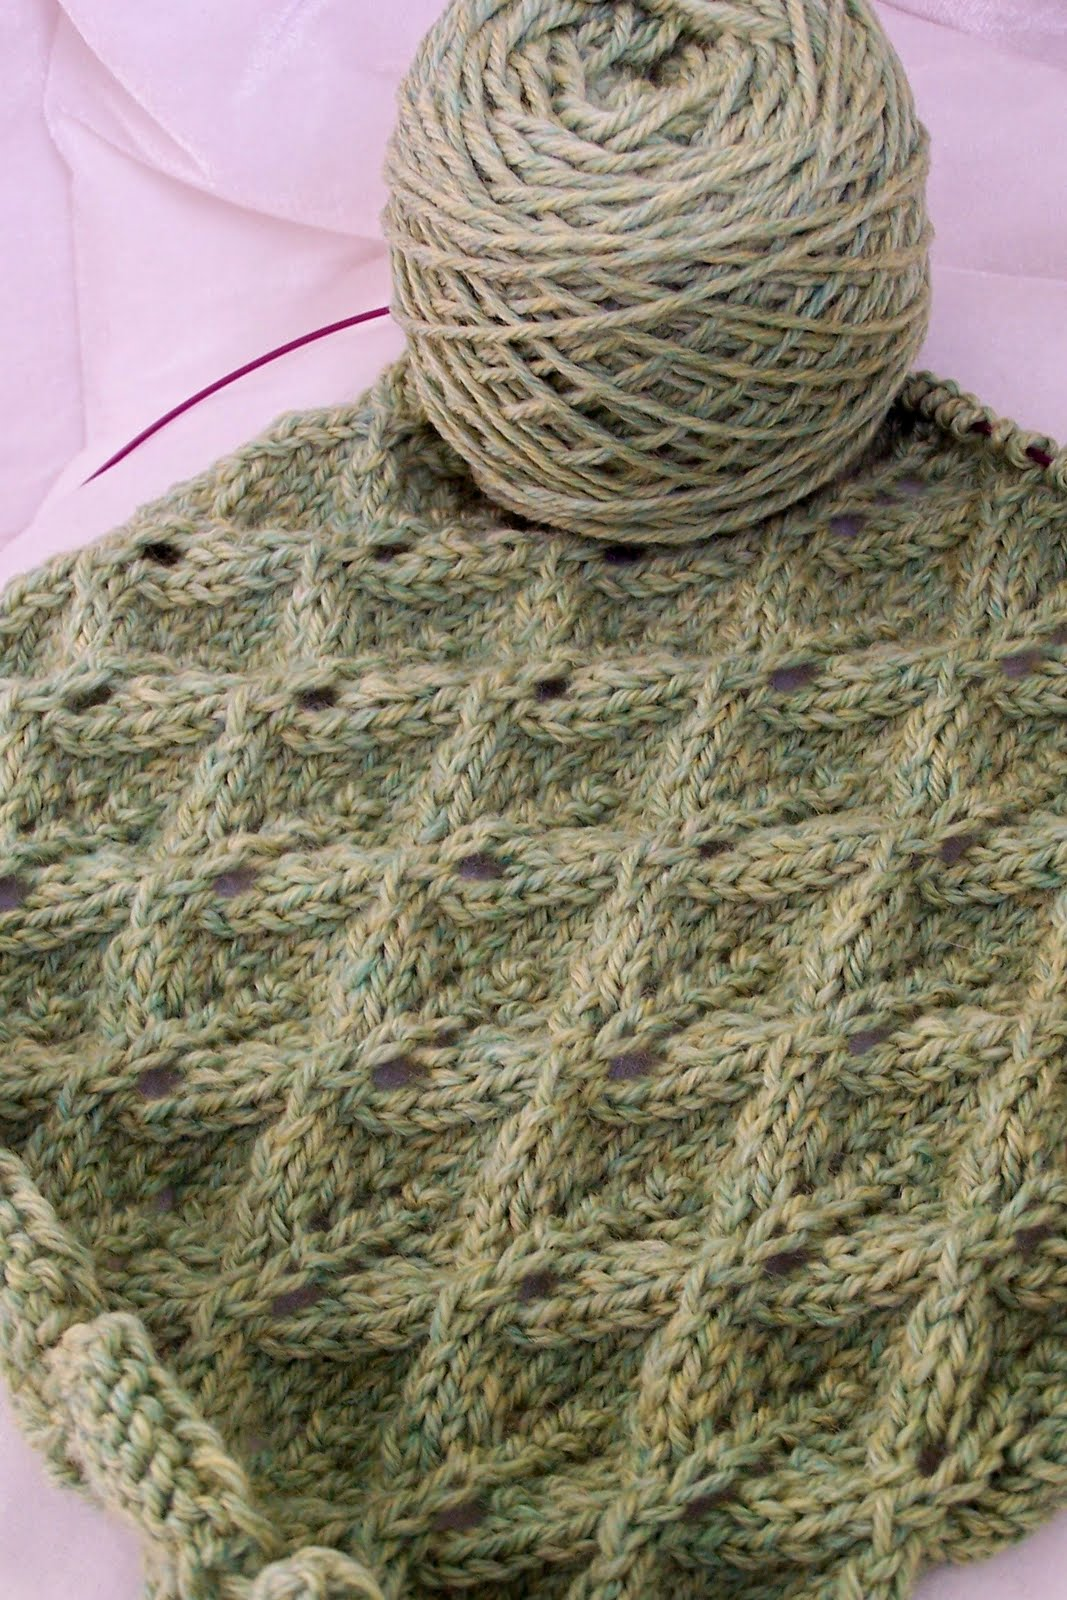 Beech Leaf Knitting Pattern : Leaf Lace Pattern - Pattern Collections